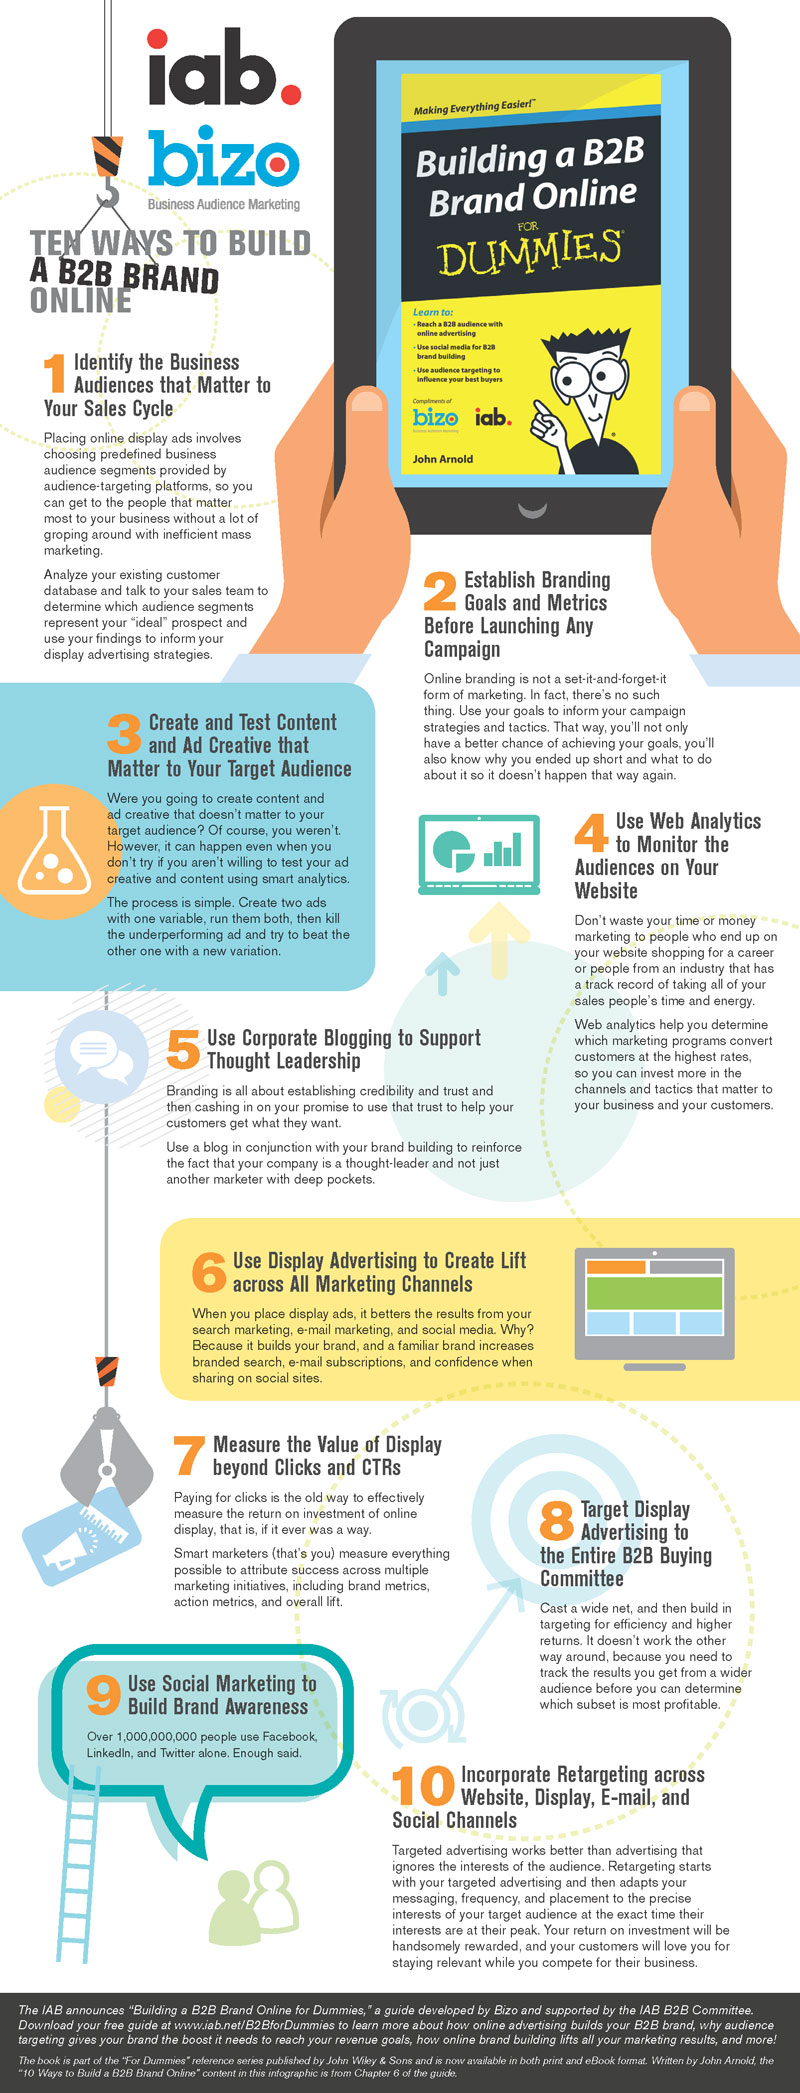 tips for building a strong bb brand online infographic building b2b brand online infographic